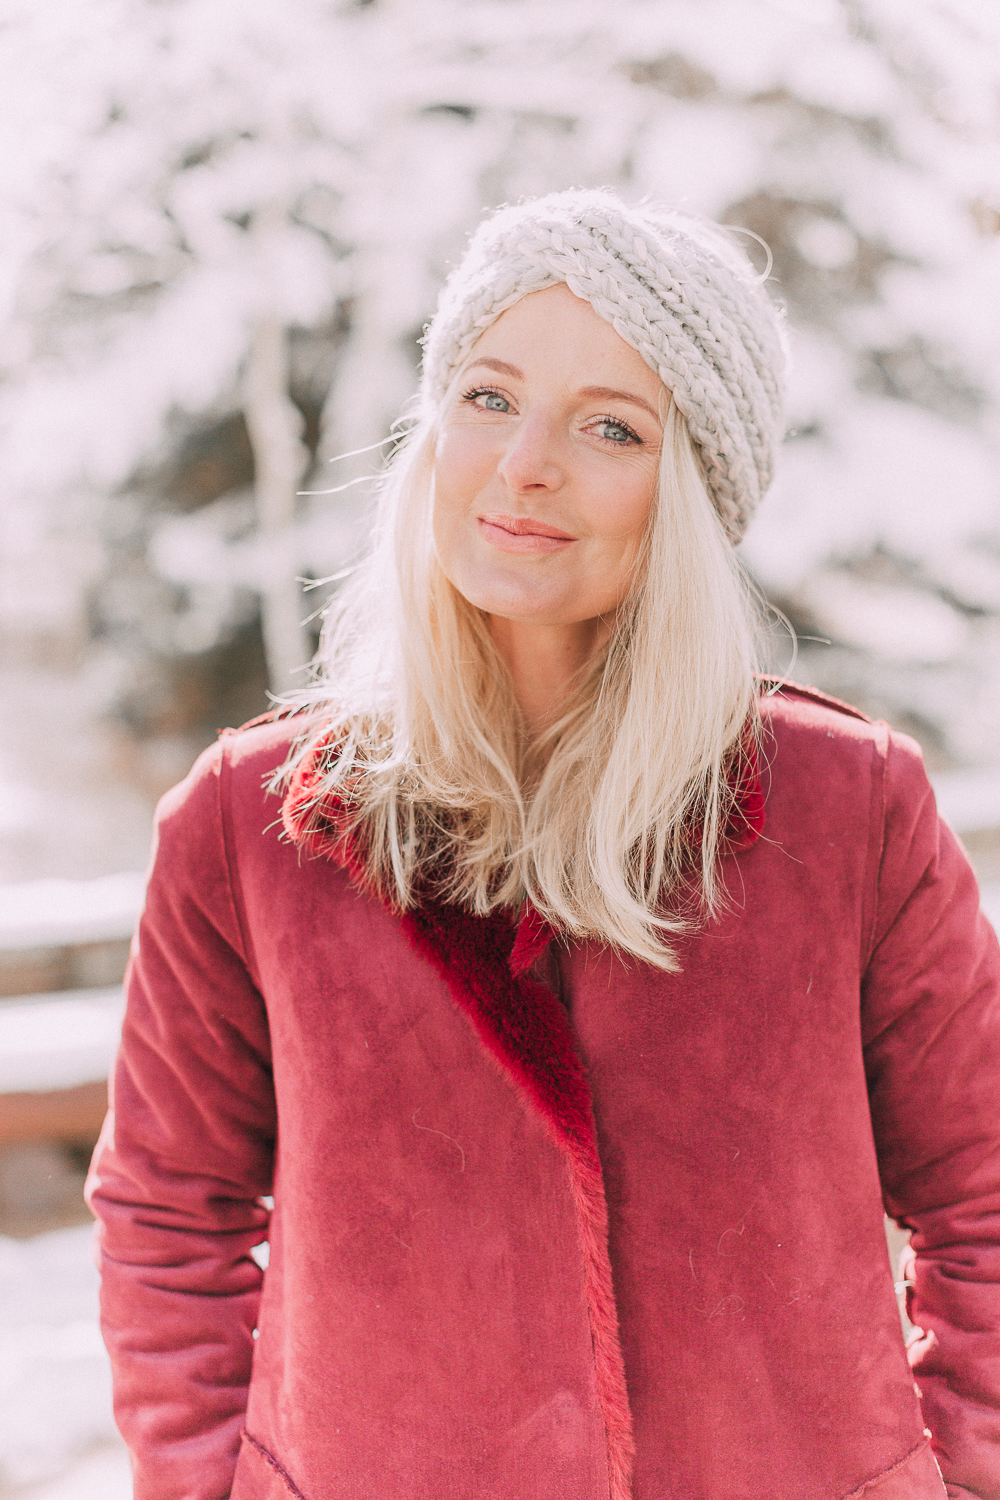 Holiday Giveaways and Holiday Gift Guides 2018 with fashion blogger Erin Busbee of BusbeeStyle.com